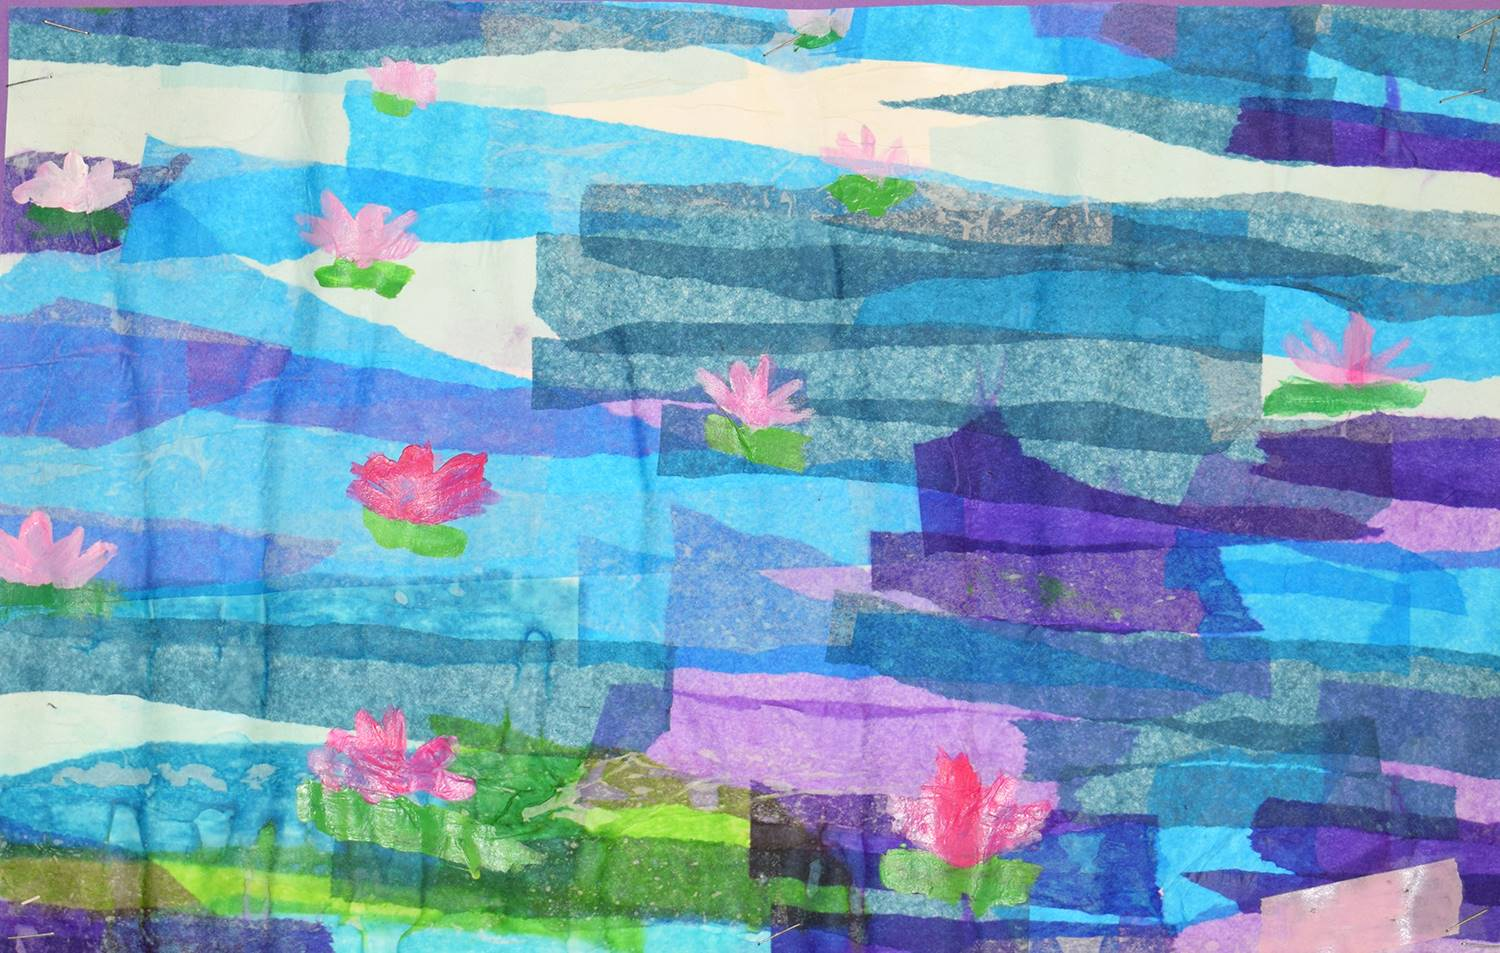 A rendition of Monet's Water Lilies done in a collage of blue, purple, green and pink tissue pap